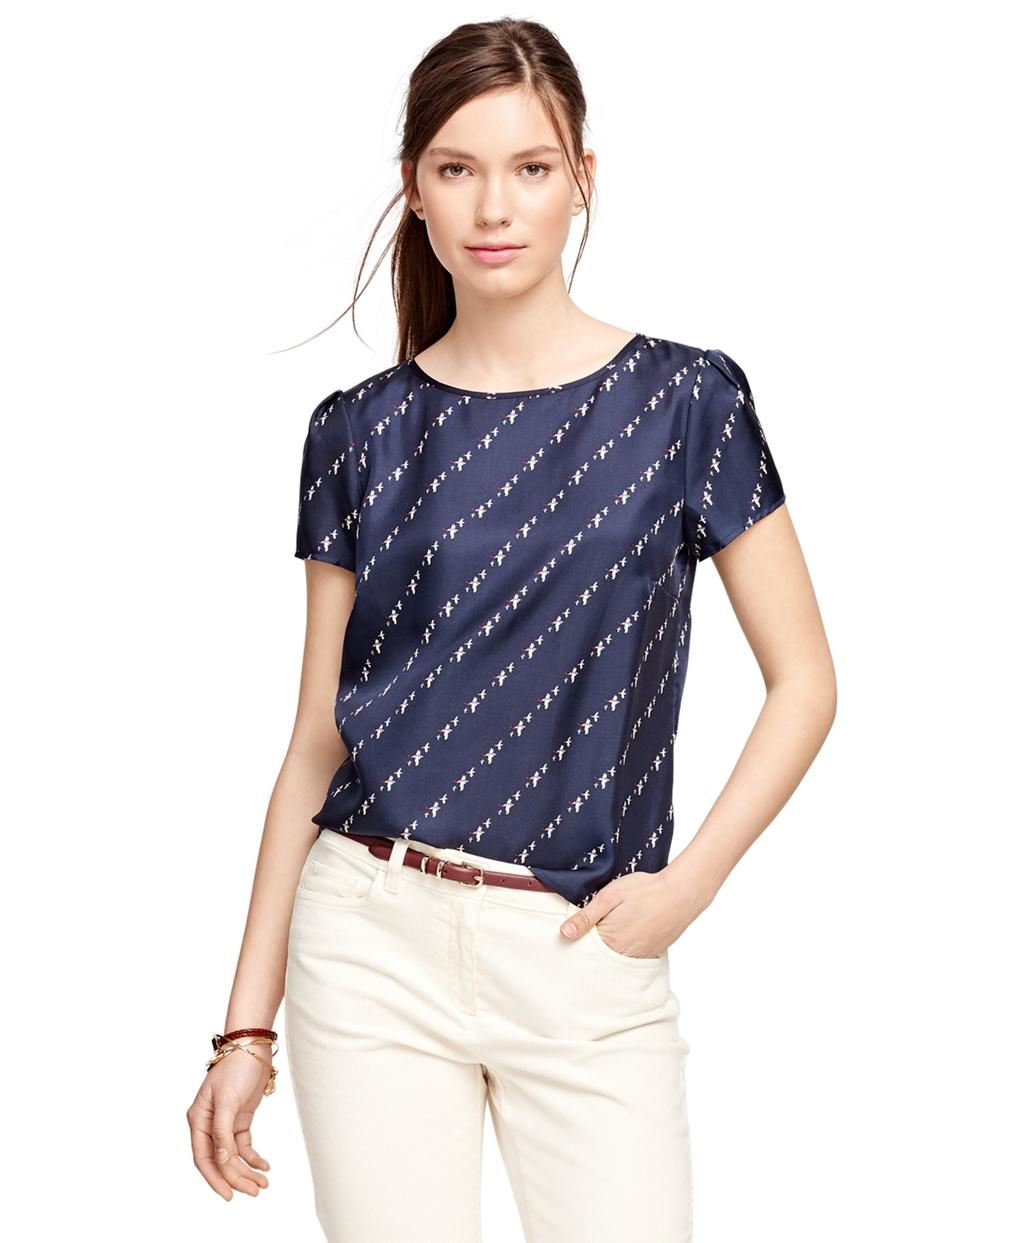 Women'S Short Sleeve Silk Blouse 9